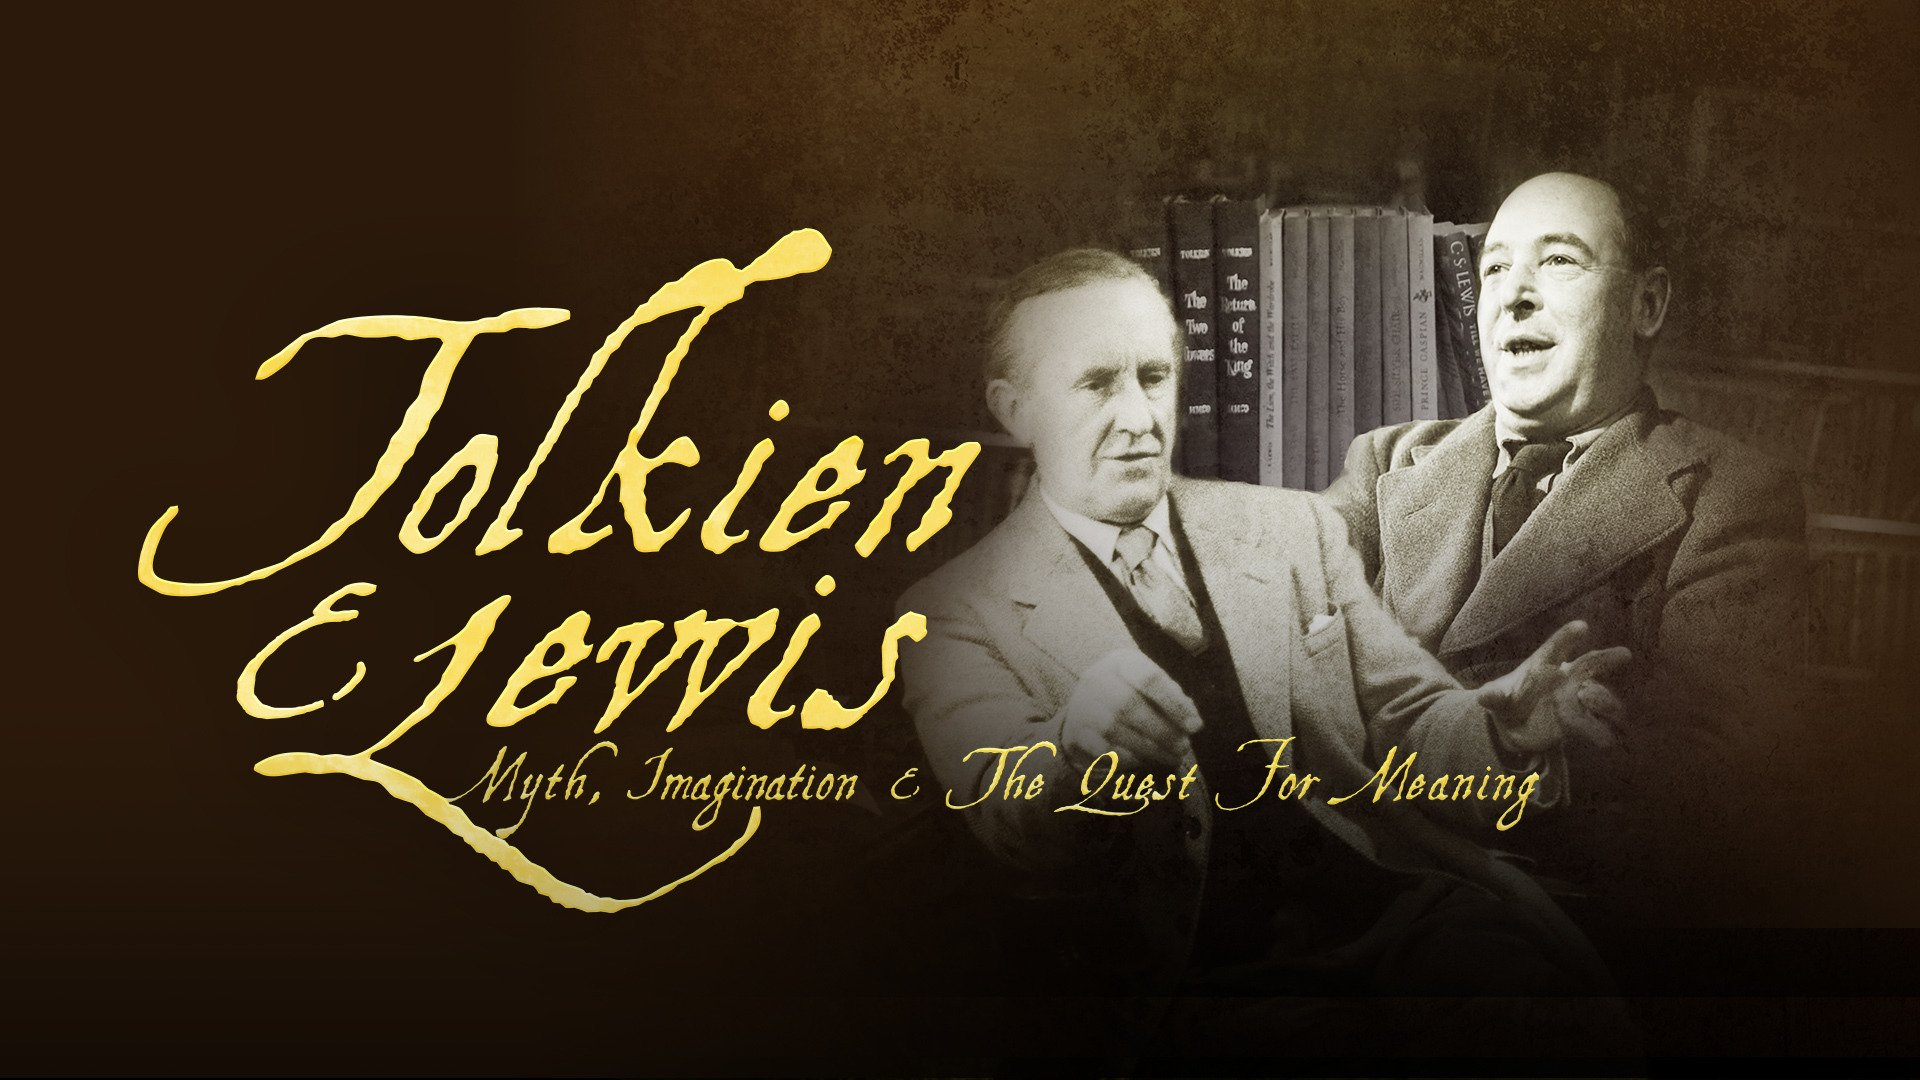 Amazon.com: Tolkien And Lewis: Myth, Imagination And The Quest For Meaning:  Chip Duncan, Robert Huck, Patricia Ostermick, David Crouse: Amazon Digital  ...